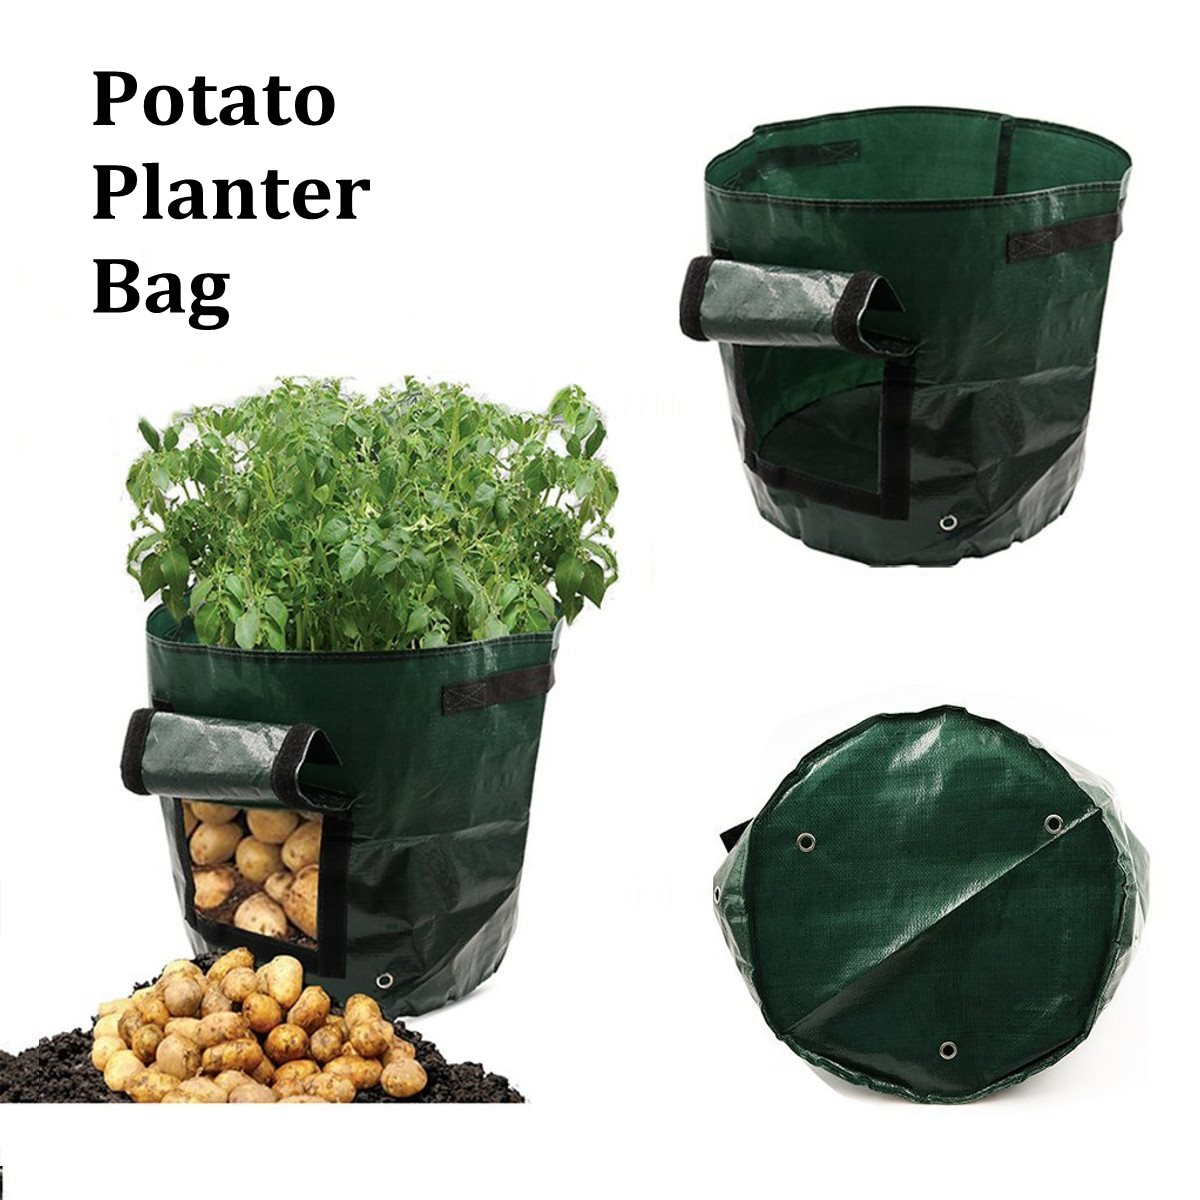 Garden Potato Grow Bag Green Plastic Vegetables Planter Access Flap Harvesting Flower Plants Nursery Pots Tools In Bags From Home